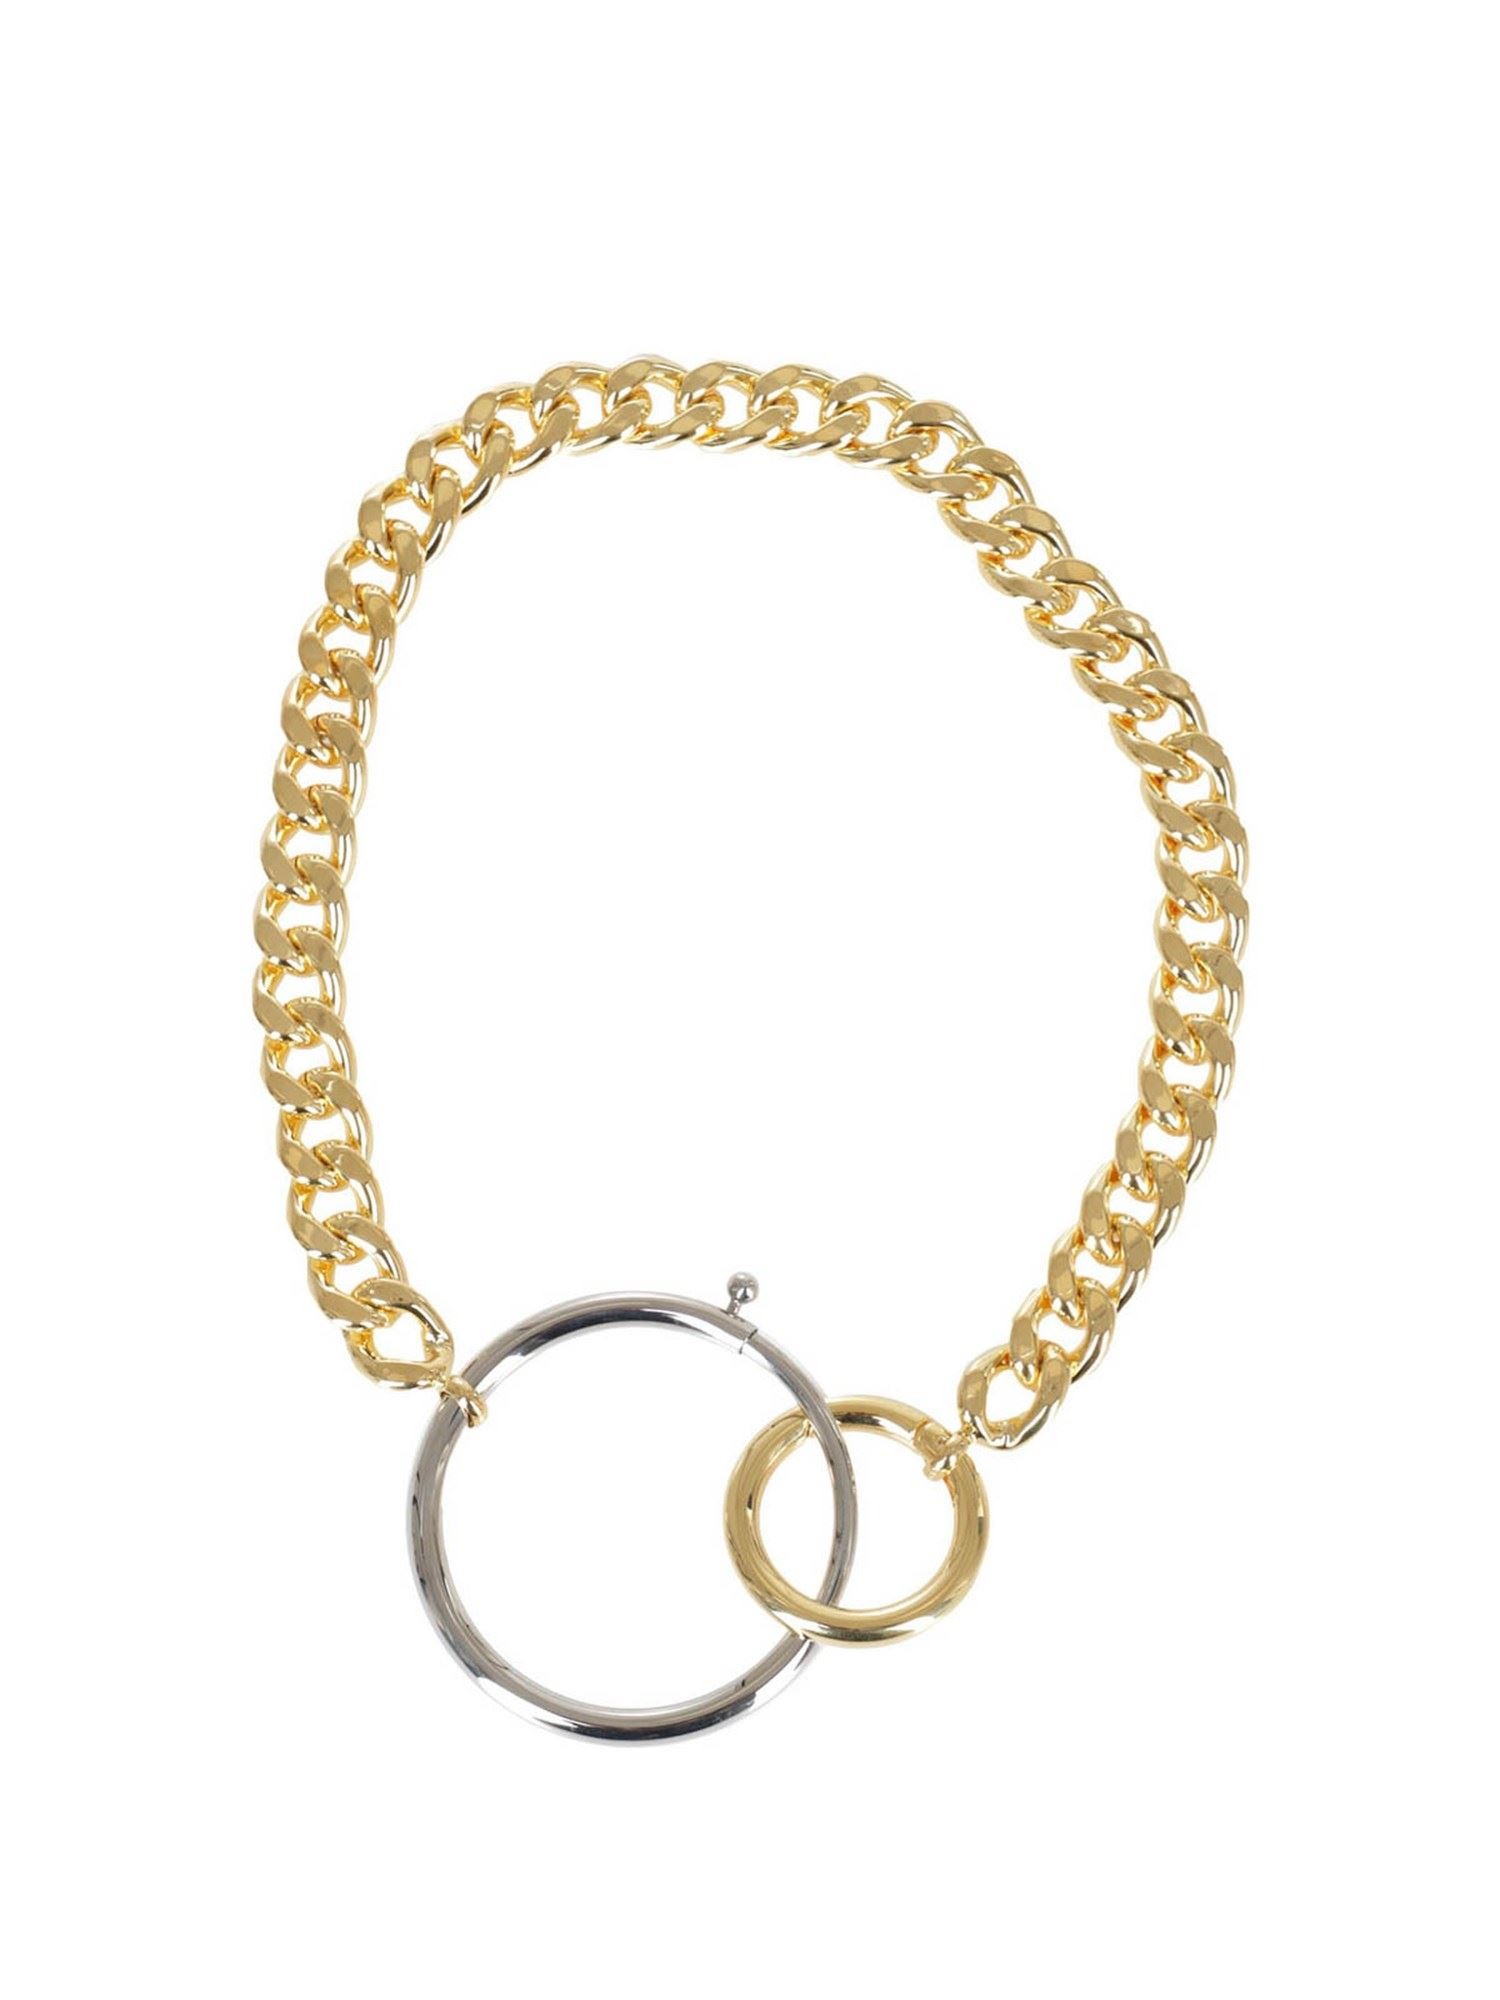 MM6 MAISON MARGIELA BRASS NECKLACE